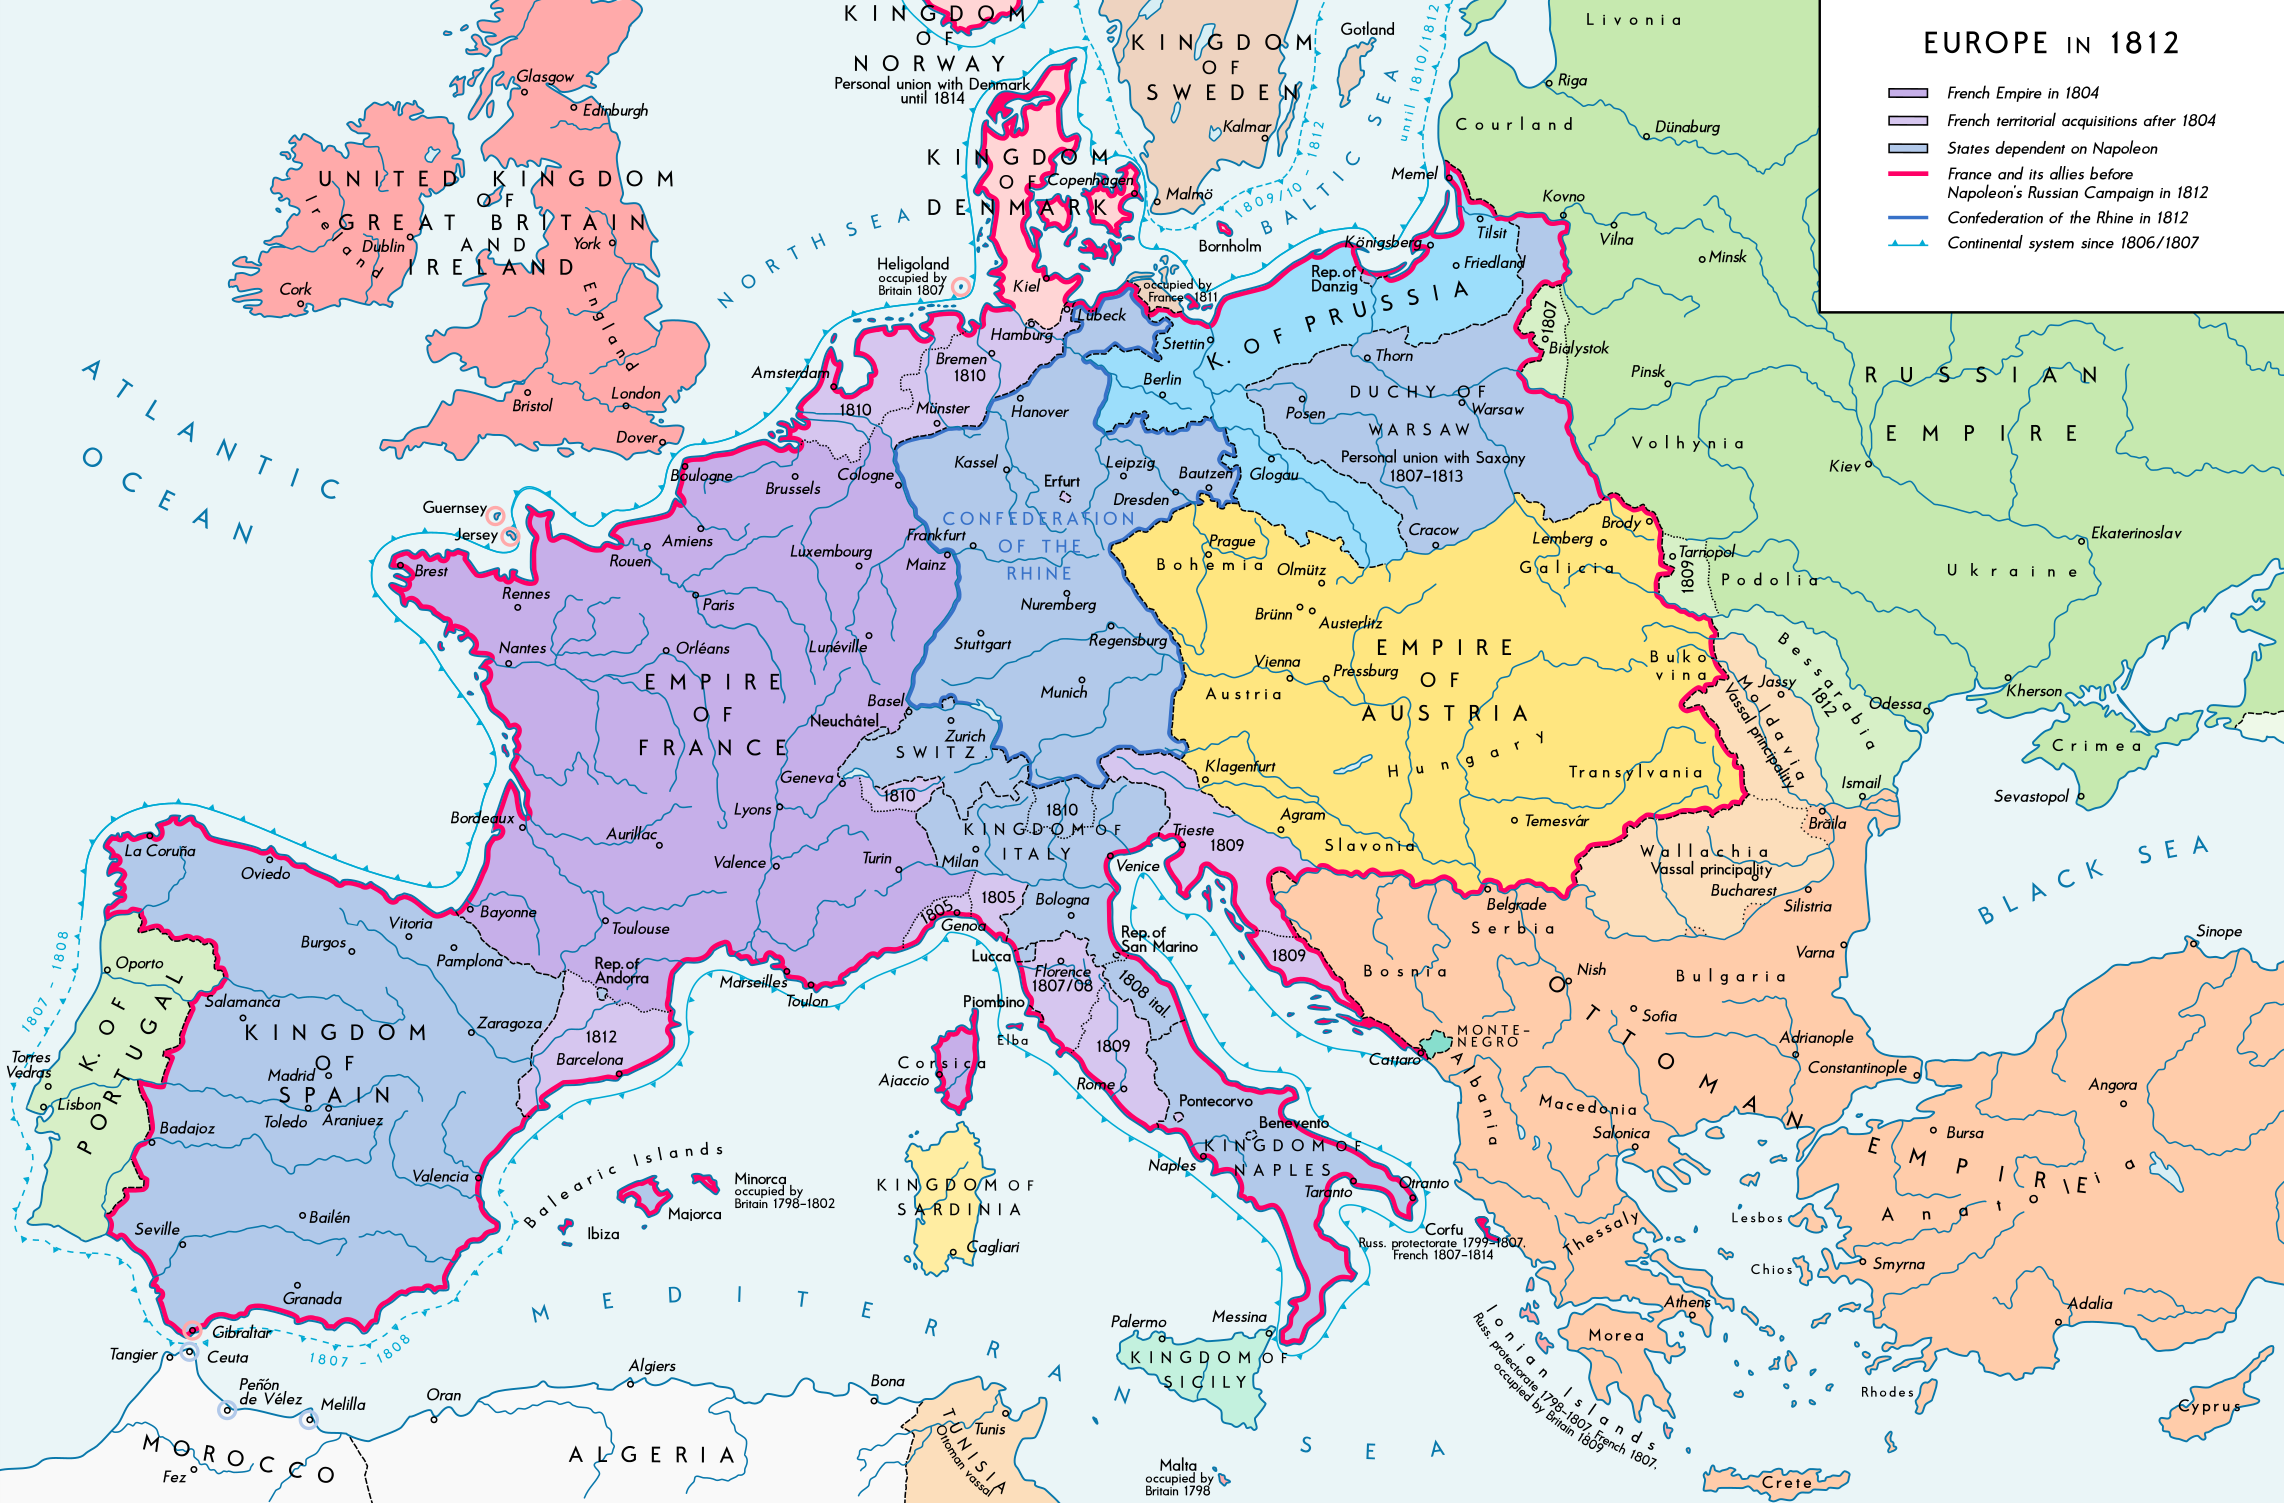 Map Of Napoleonic Europe 1812 File:Europe 1812 map en.png   Wikimedia Commons Map Of Napoleonic Europe 1812